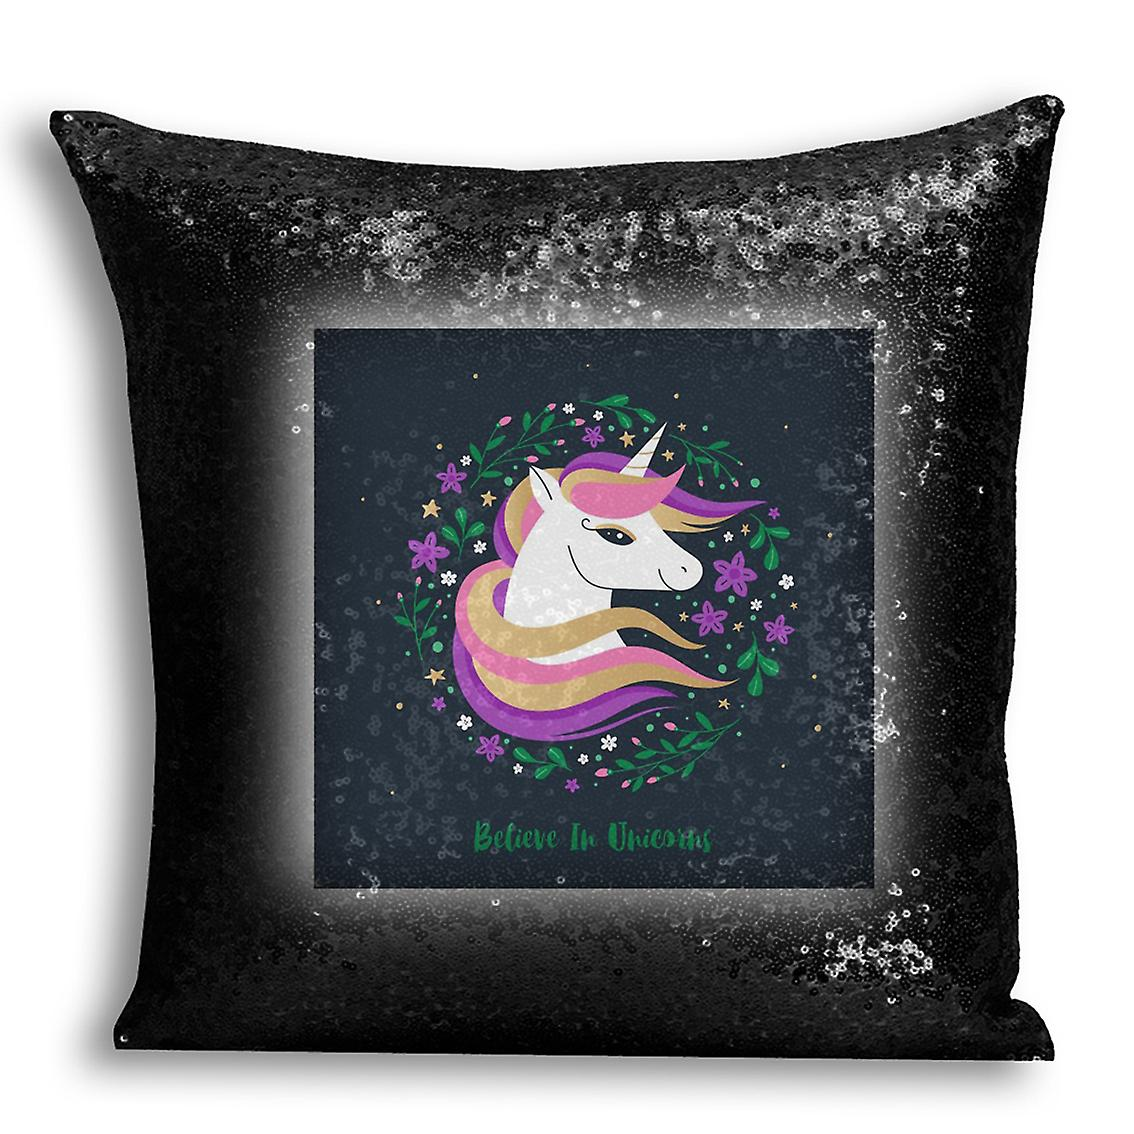 I Cover Home tronixsUnicorn Sequin Printed Design With CushionPillow Black 10 For Decor Inserted QrxWdCoeB